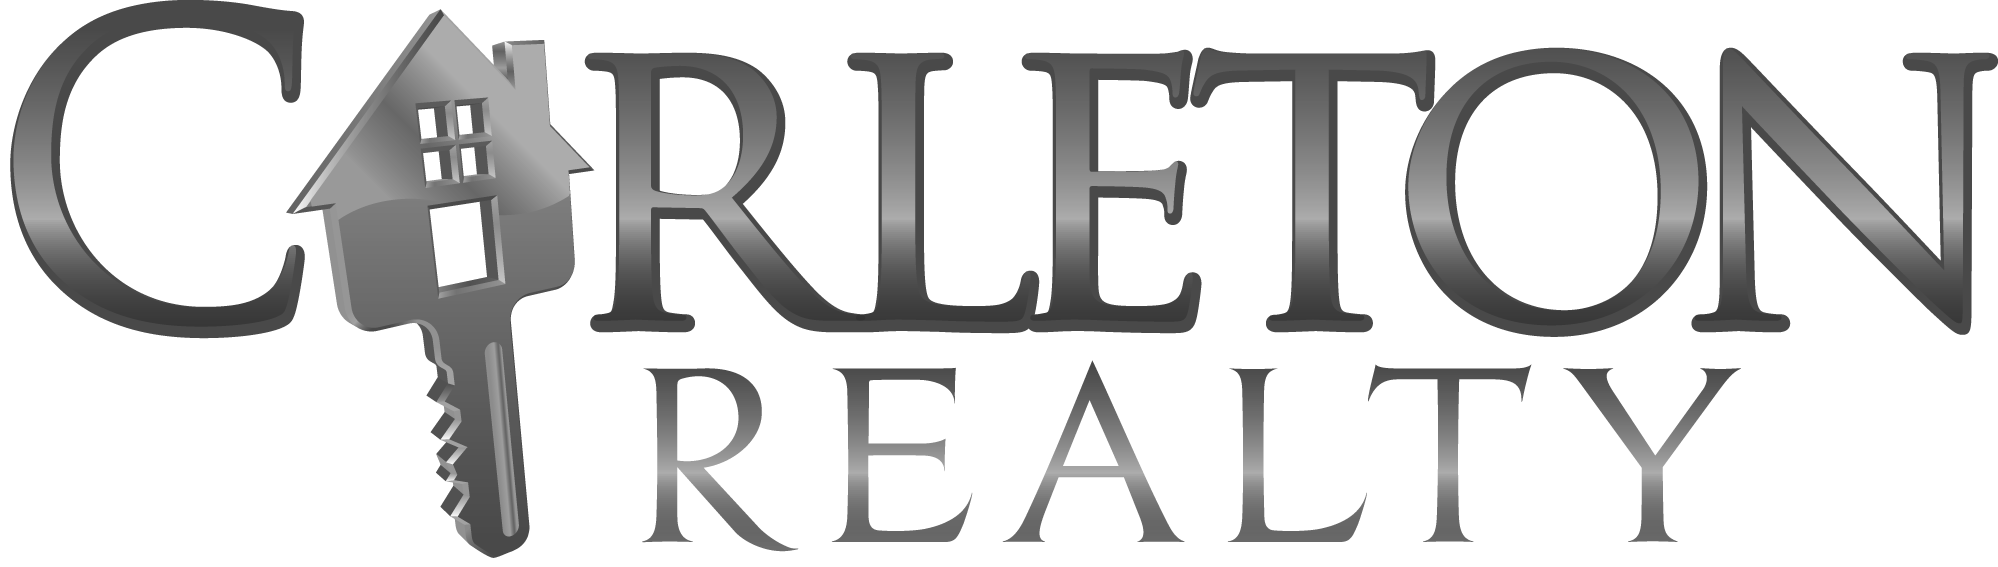 Carleton Realty - Midcoast Maine Real Estate - Wiscasset Office